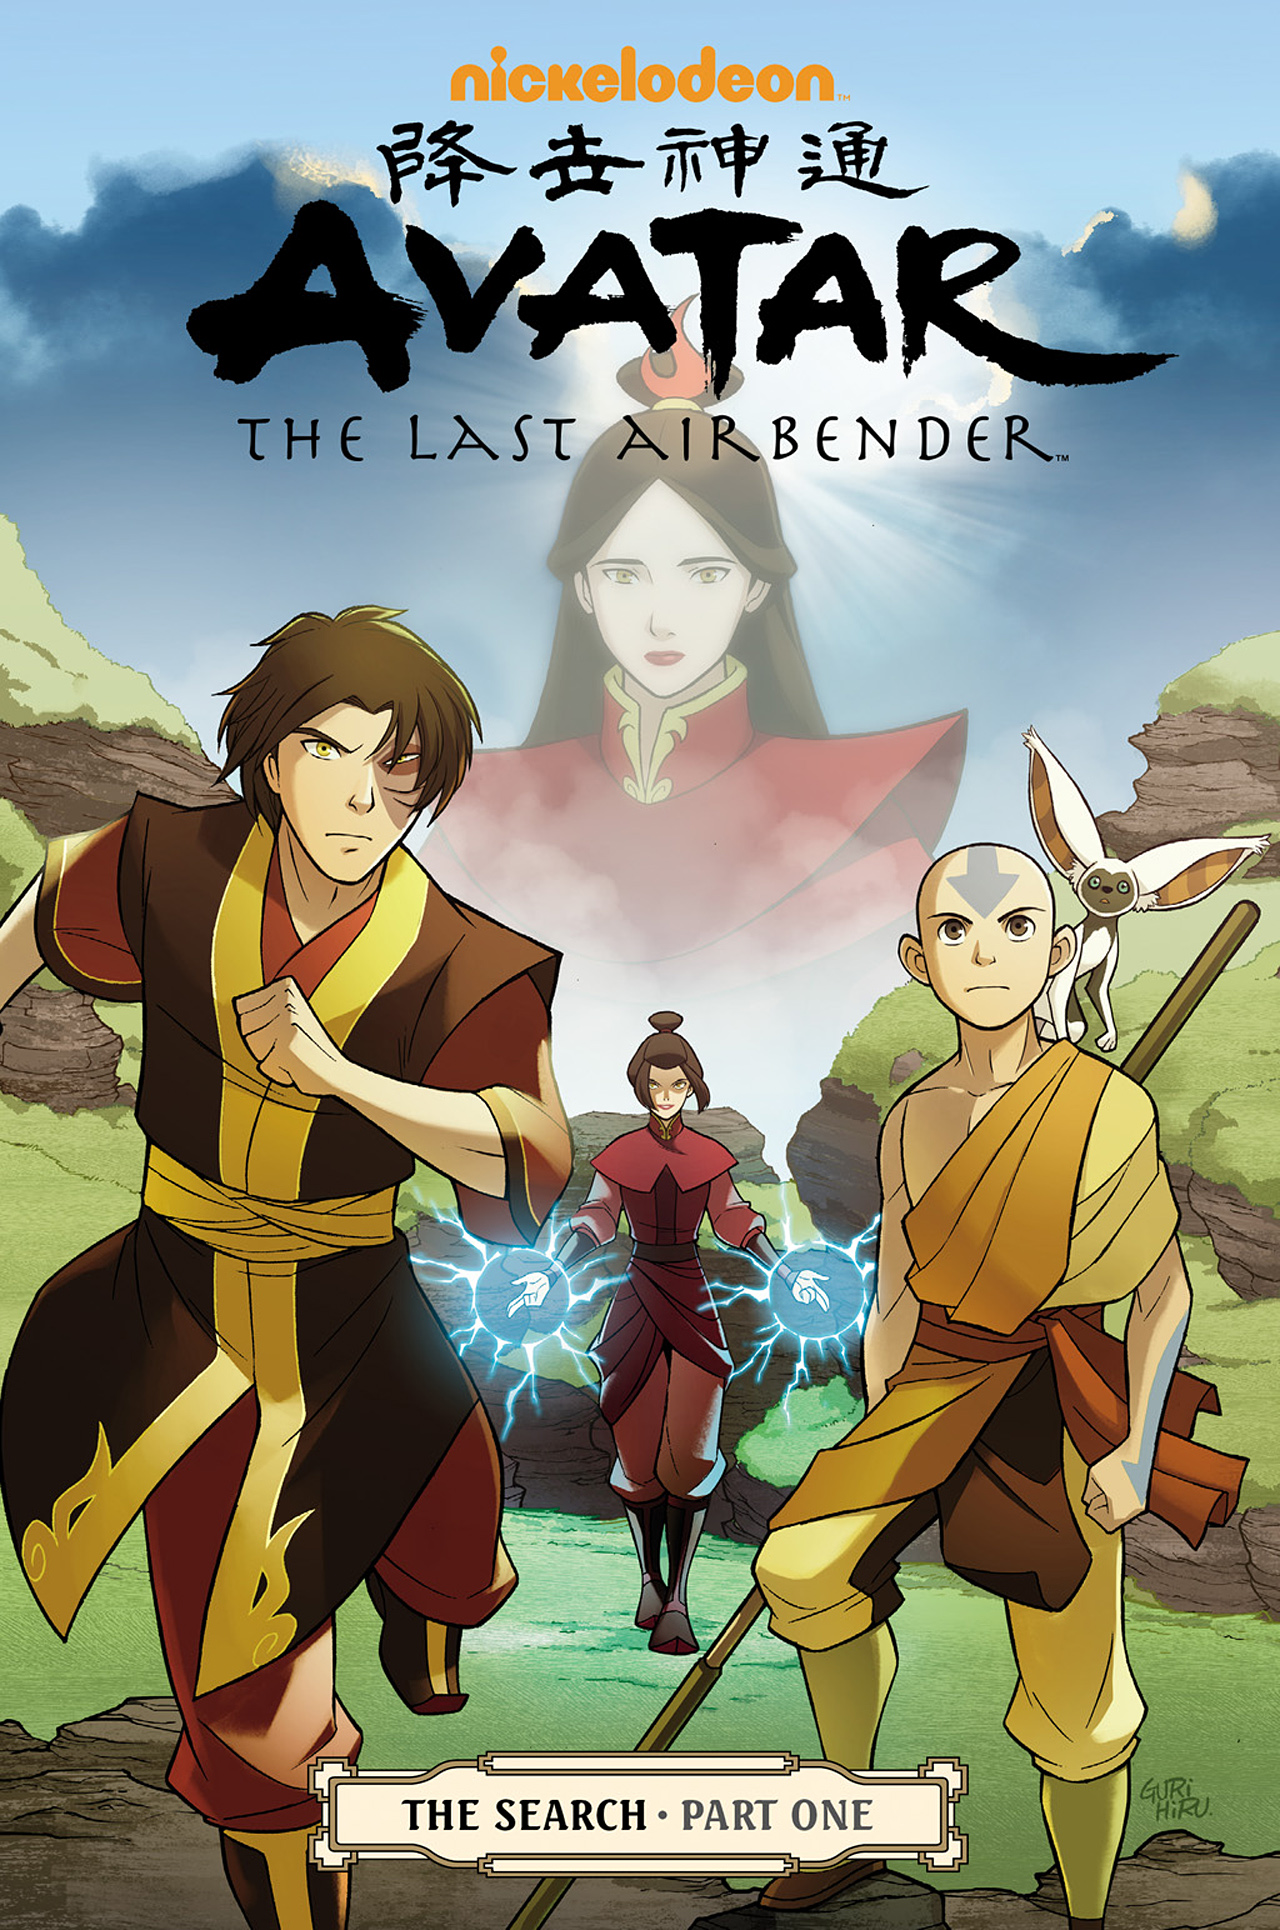 Read online Nickelodeon Avatar: The Last Airbender - The Search comic -  Issue # Part 1 - 1